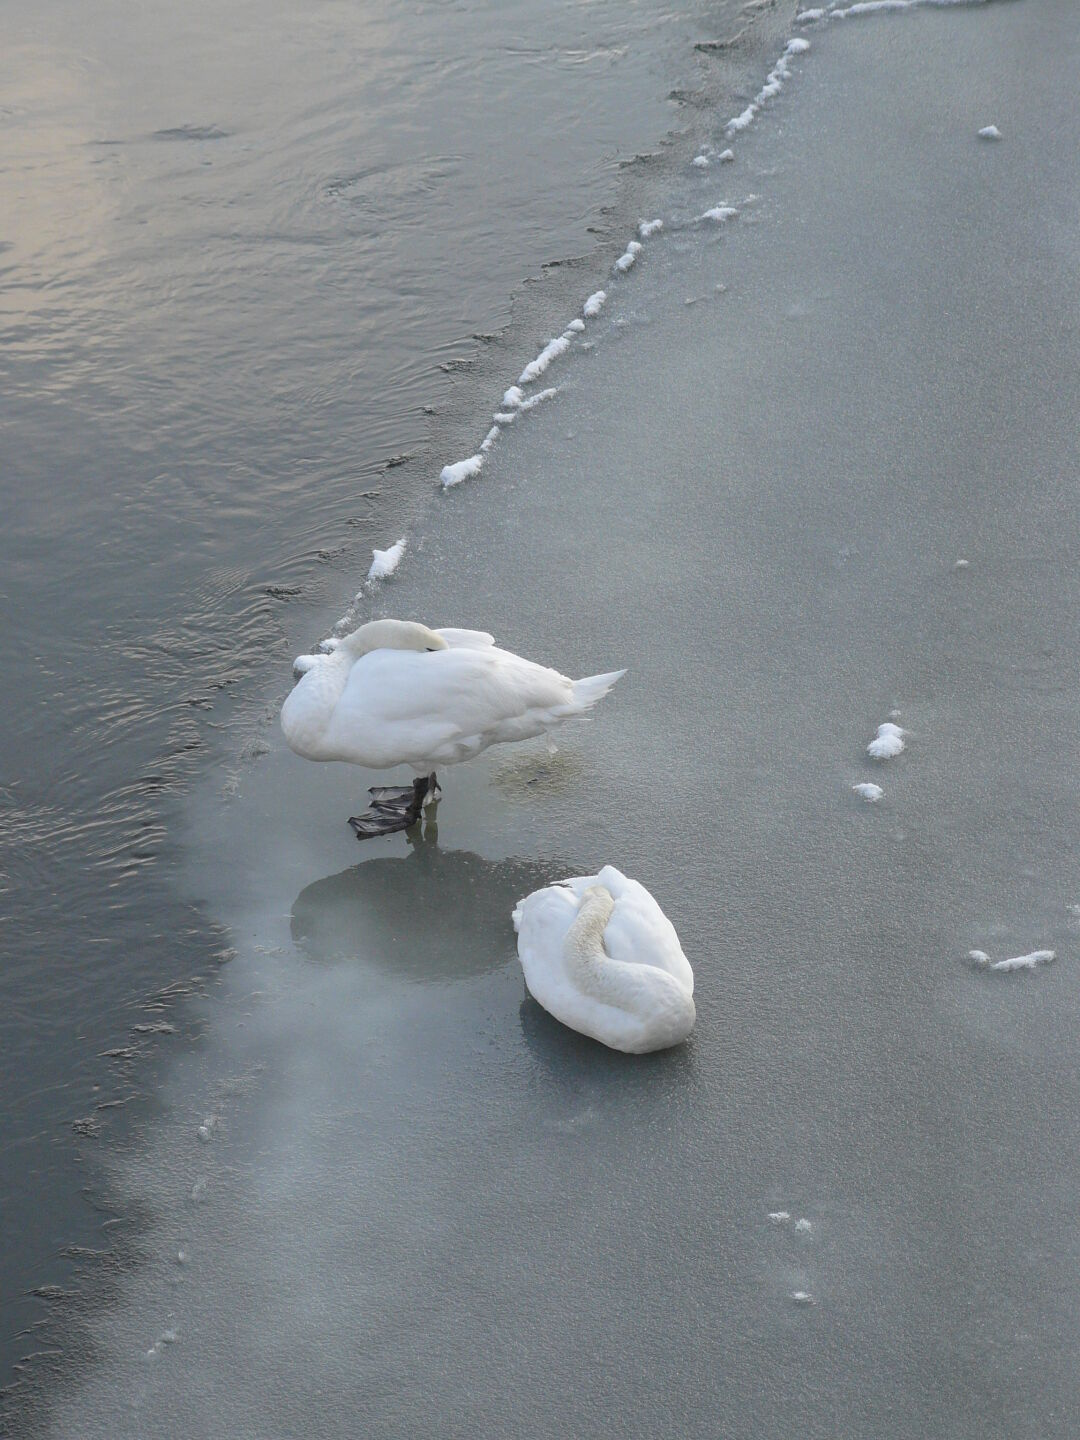 ...which allows these swans to rest safely.